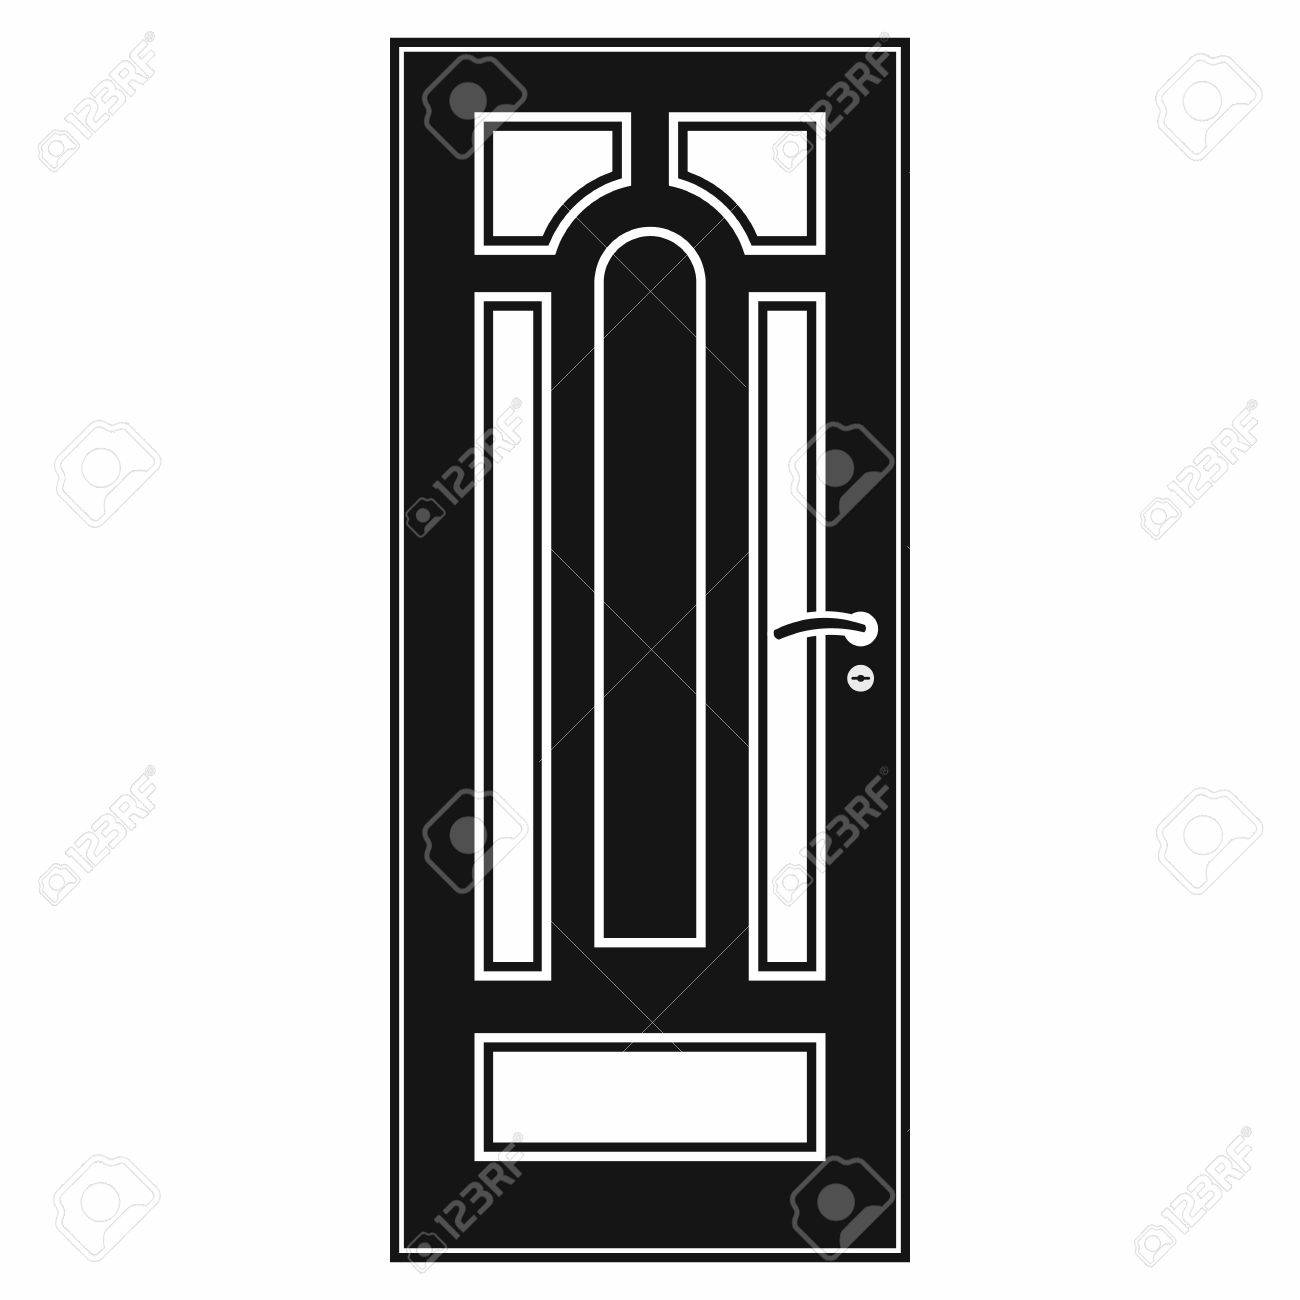 front door clipart black and white. Front Door Icon In Simple Style On A White Background Stock Vector - 57365774 Clipart Black And